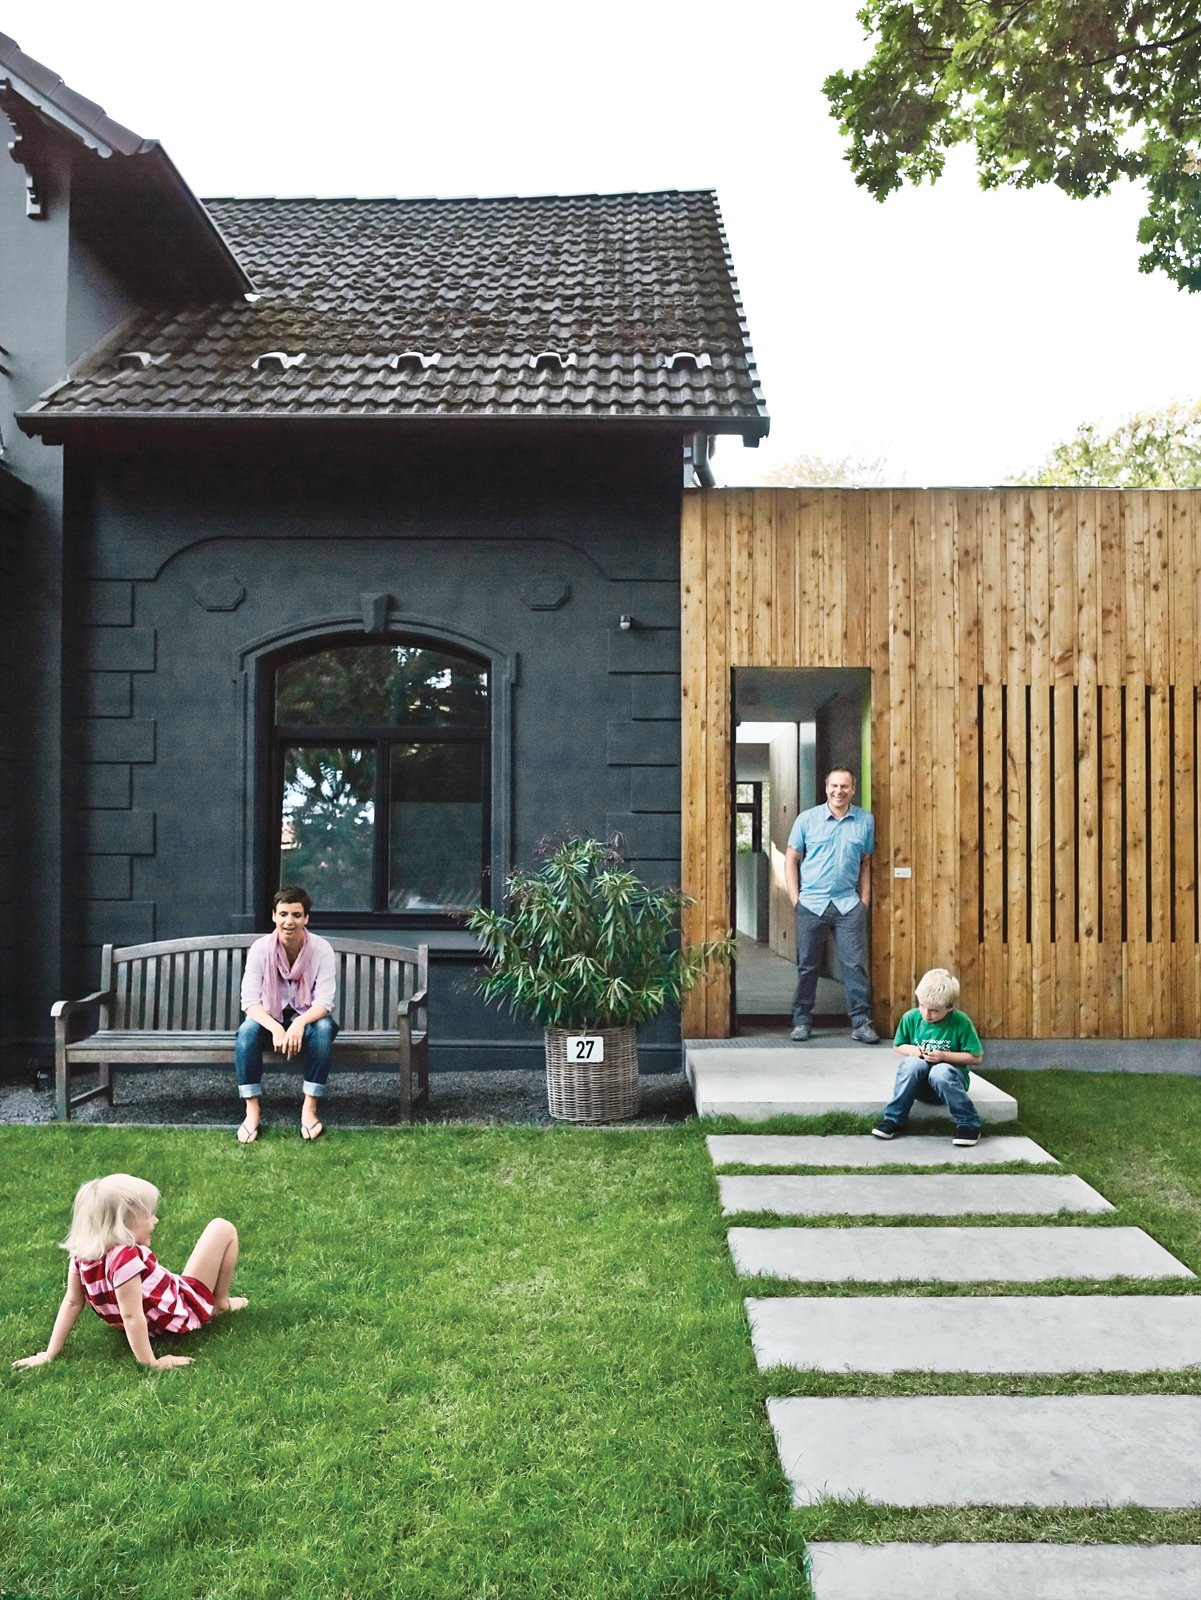 A family of cost-conscious Hamburgers converted a kitschy turn-of-the-century villa into a high-design home with a strict budget in place. To unite the quaint masonry of the original villa with the squat, ugly add-on built flush against it, the architects decided to paint the old-fashioned facade graphite gray and then covered the box next door in plain, light-colored larch. Photo by Mark Seelen.  All-Clad: 7 Innovative Exteriors by Kelsey Keith from Paint it Black